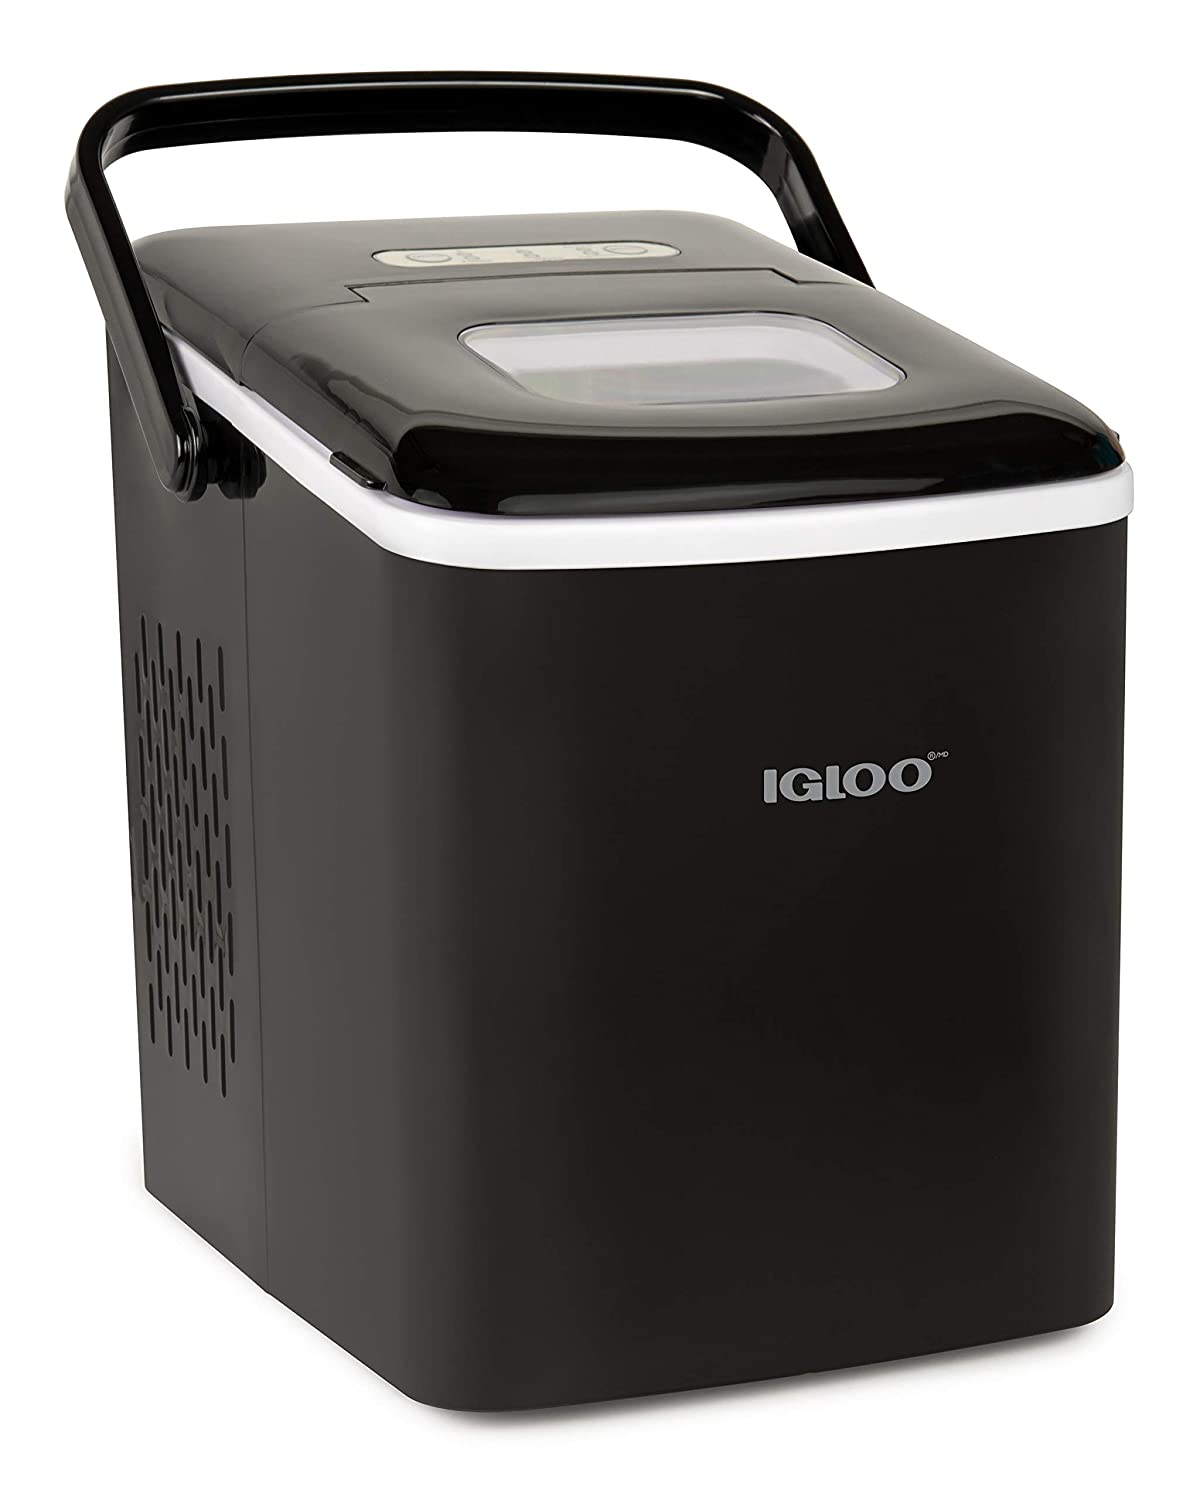 Igloo ICEB26HNBK Automatic Self-Cleaning Portable Electric Countertop Ice Maker Machine With Handle, 26 Pounds in 24 Hours, 9 Ice Cubes Ready in 7 minutes, With Ice Scoop and Basket